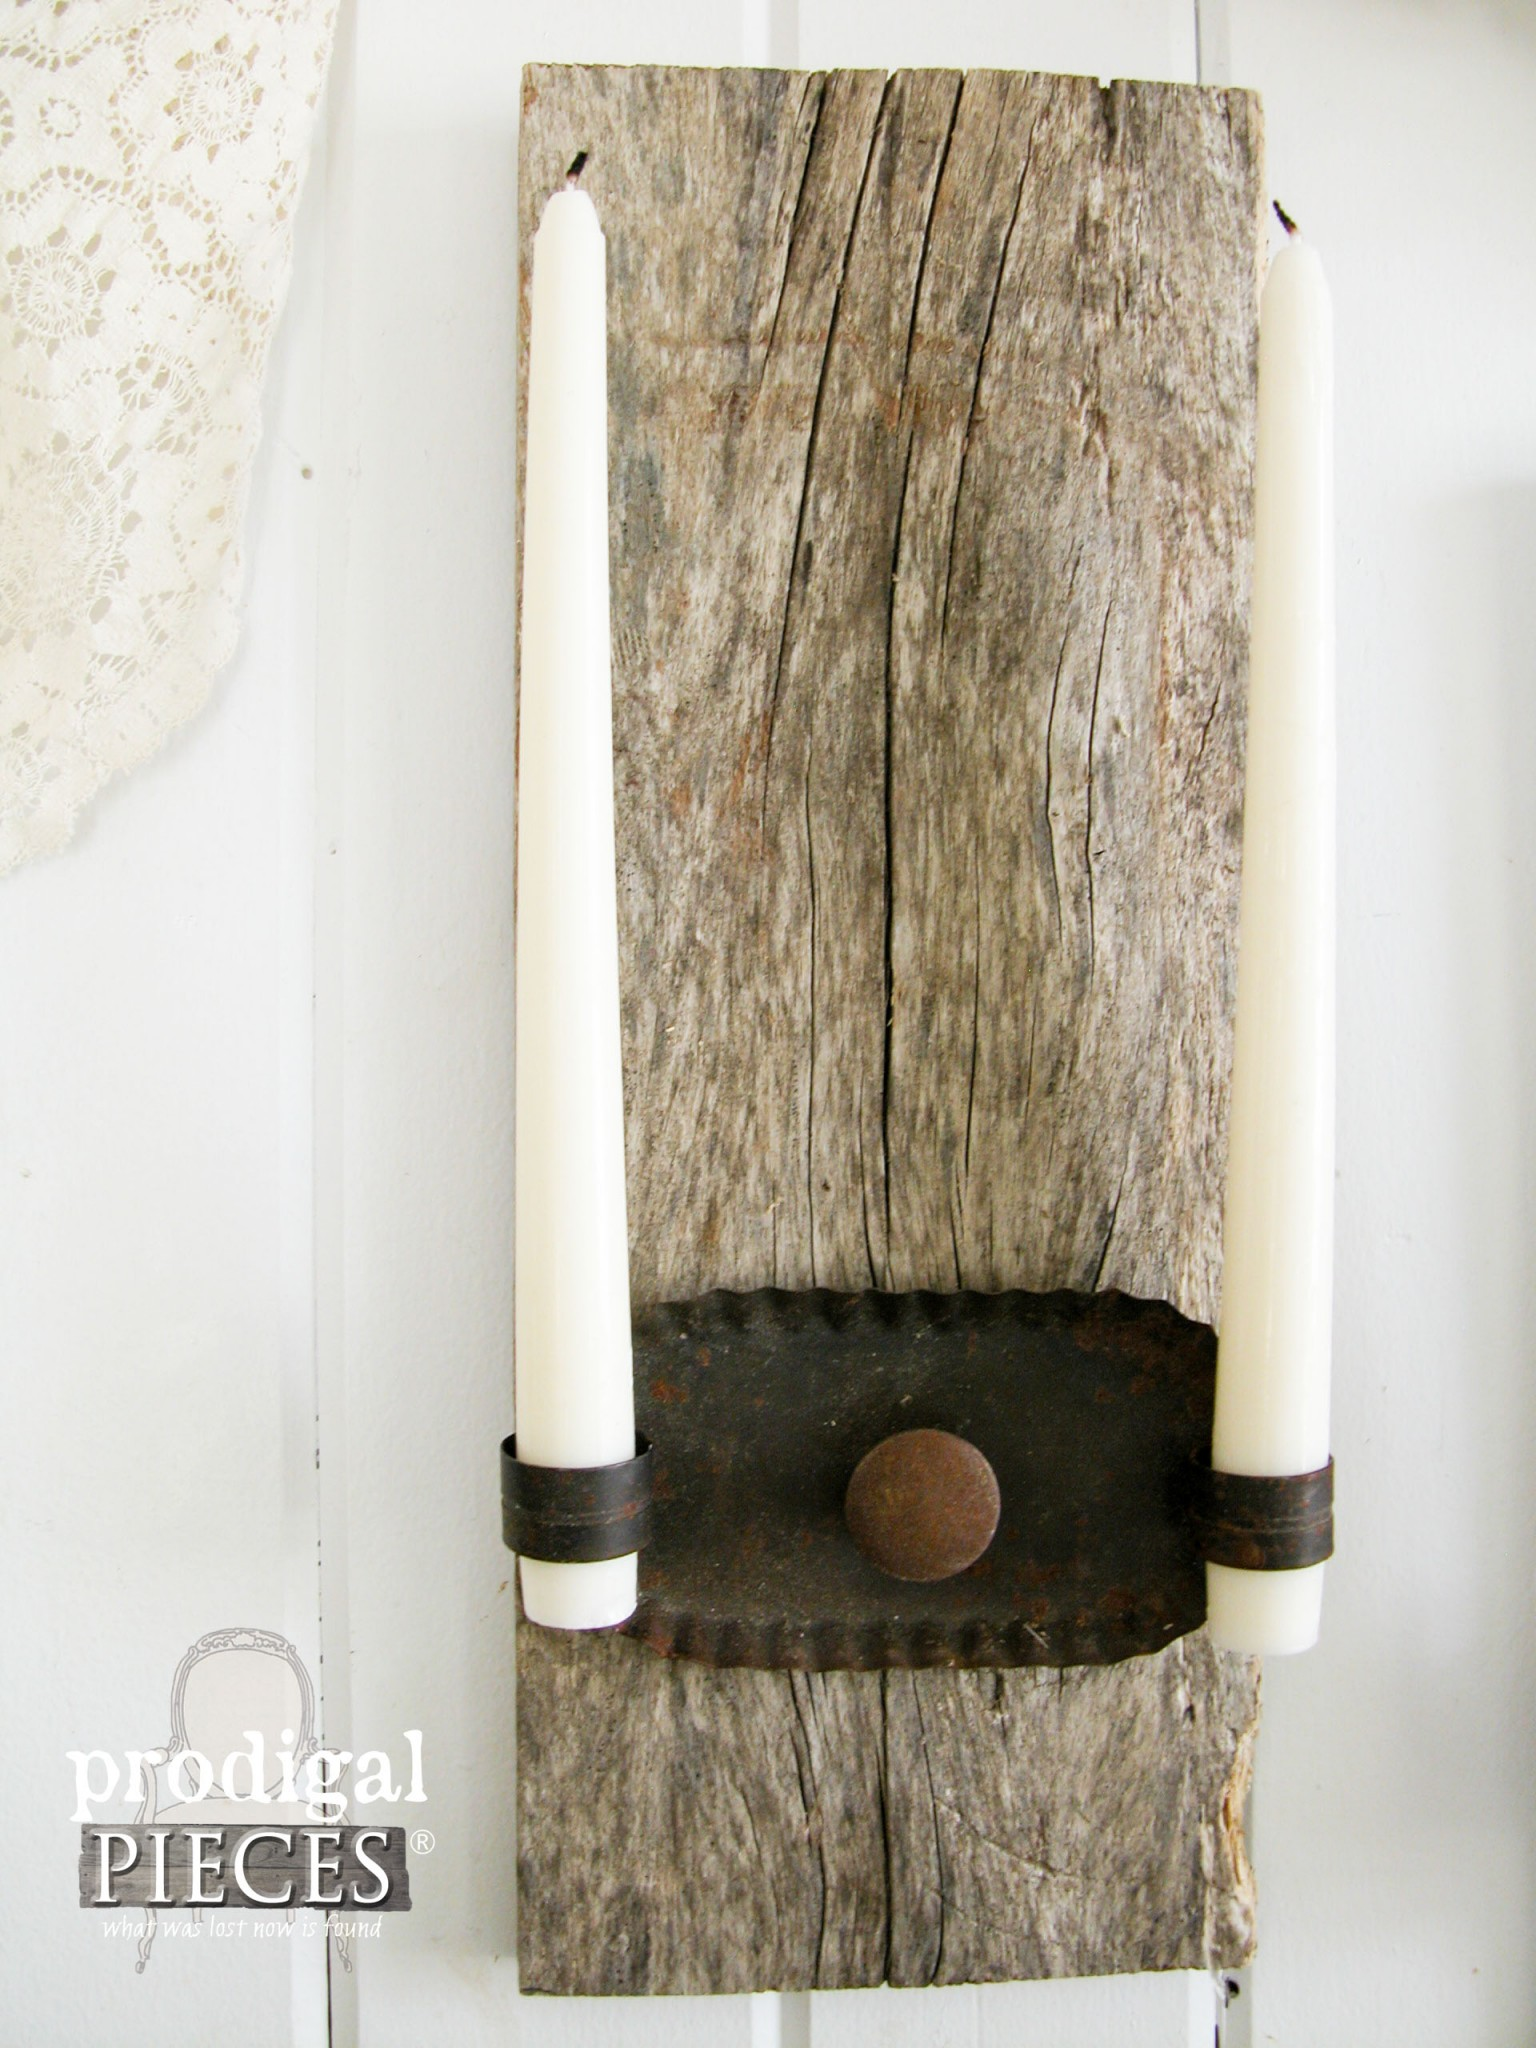 Rustic Candle Sconces Made with Reclaimed Wood and Repurposed Parts by Prodigal Pieces | www.prodigalpieces.com